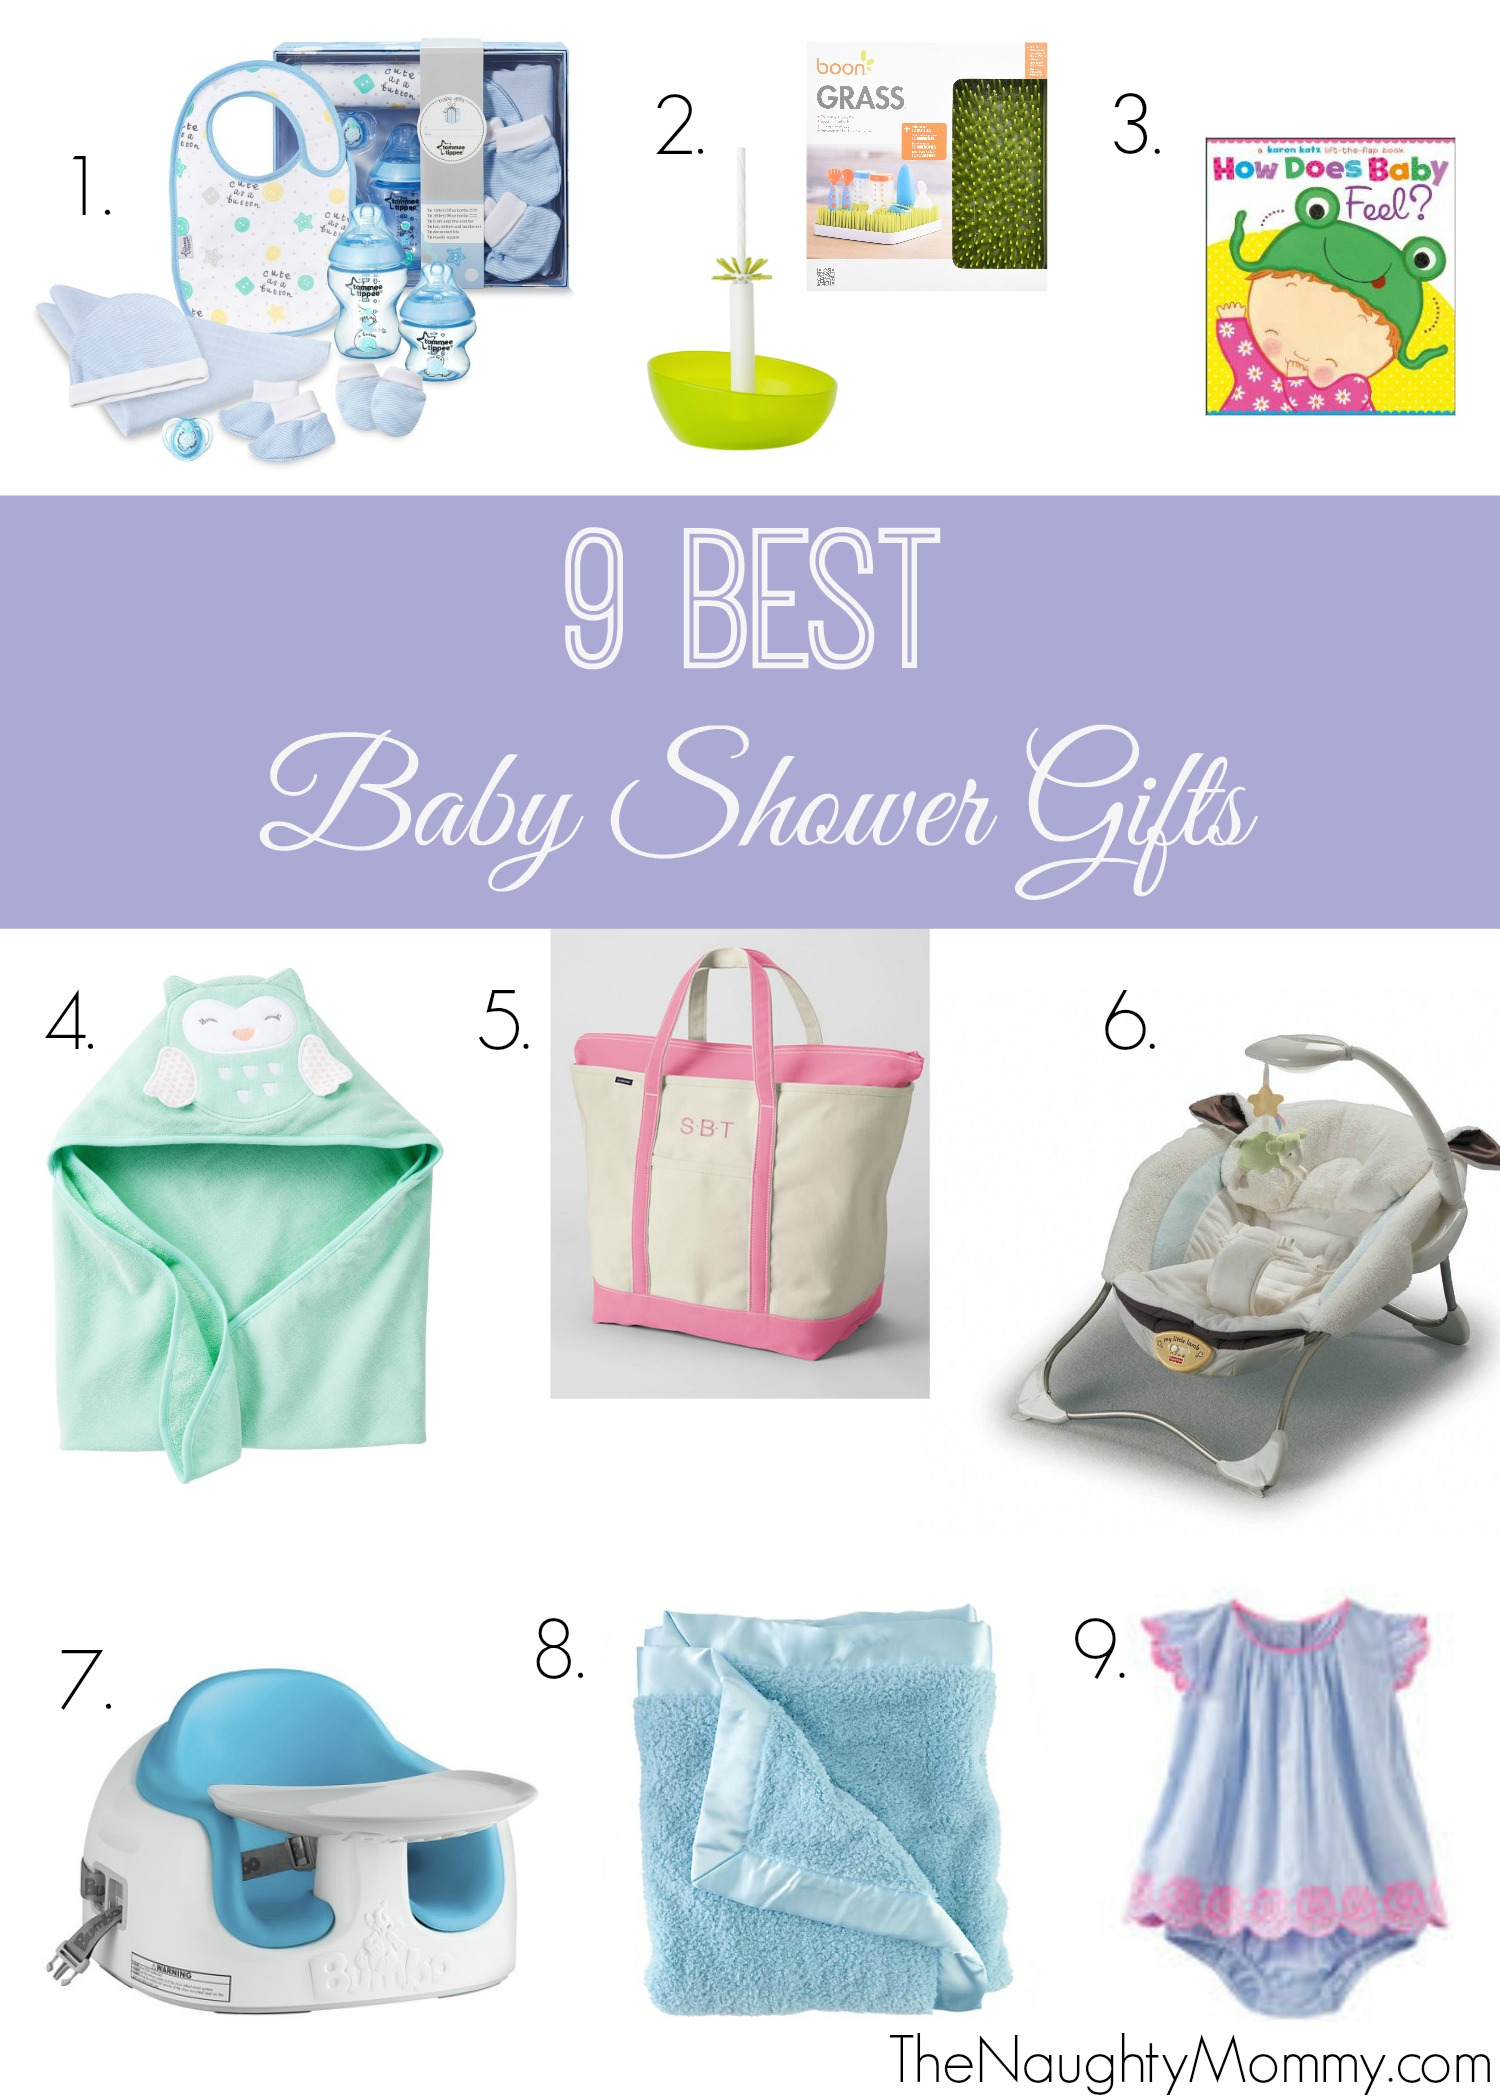 9 best baby shower gifts the naughty mommy 9 best baby shower gifts negle Gallery